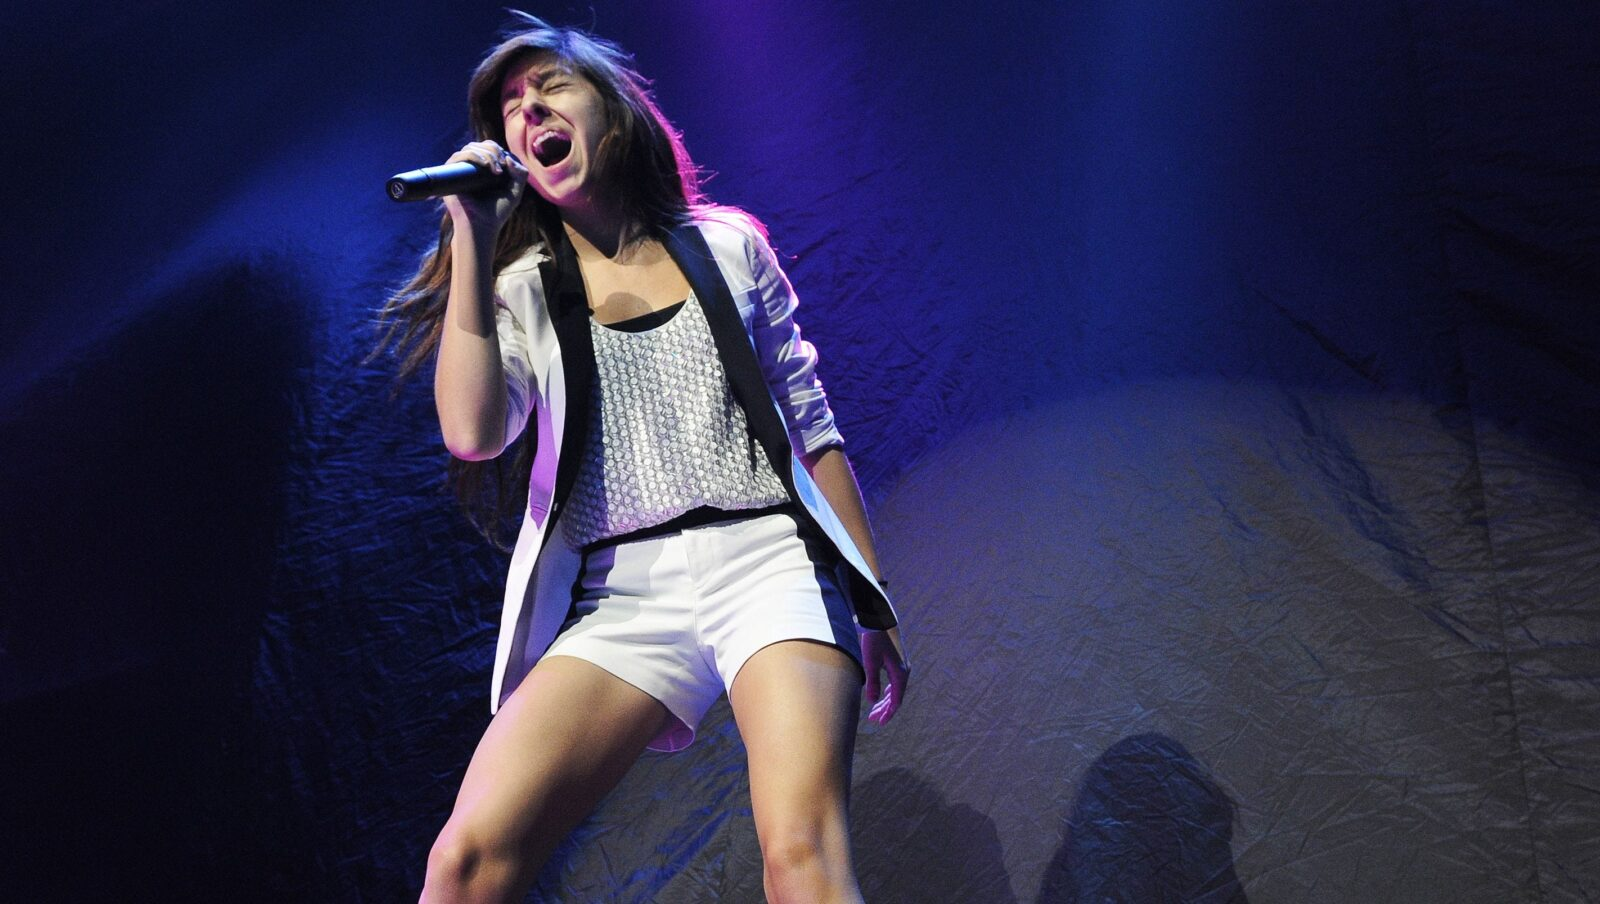 A talented singer, lost to the world. Christina Grimmie lost her life in 2016 thanks to an obsessive fan turned into an enemy.